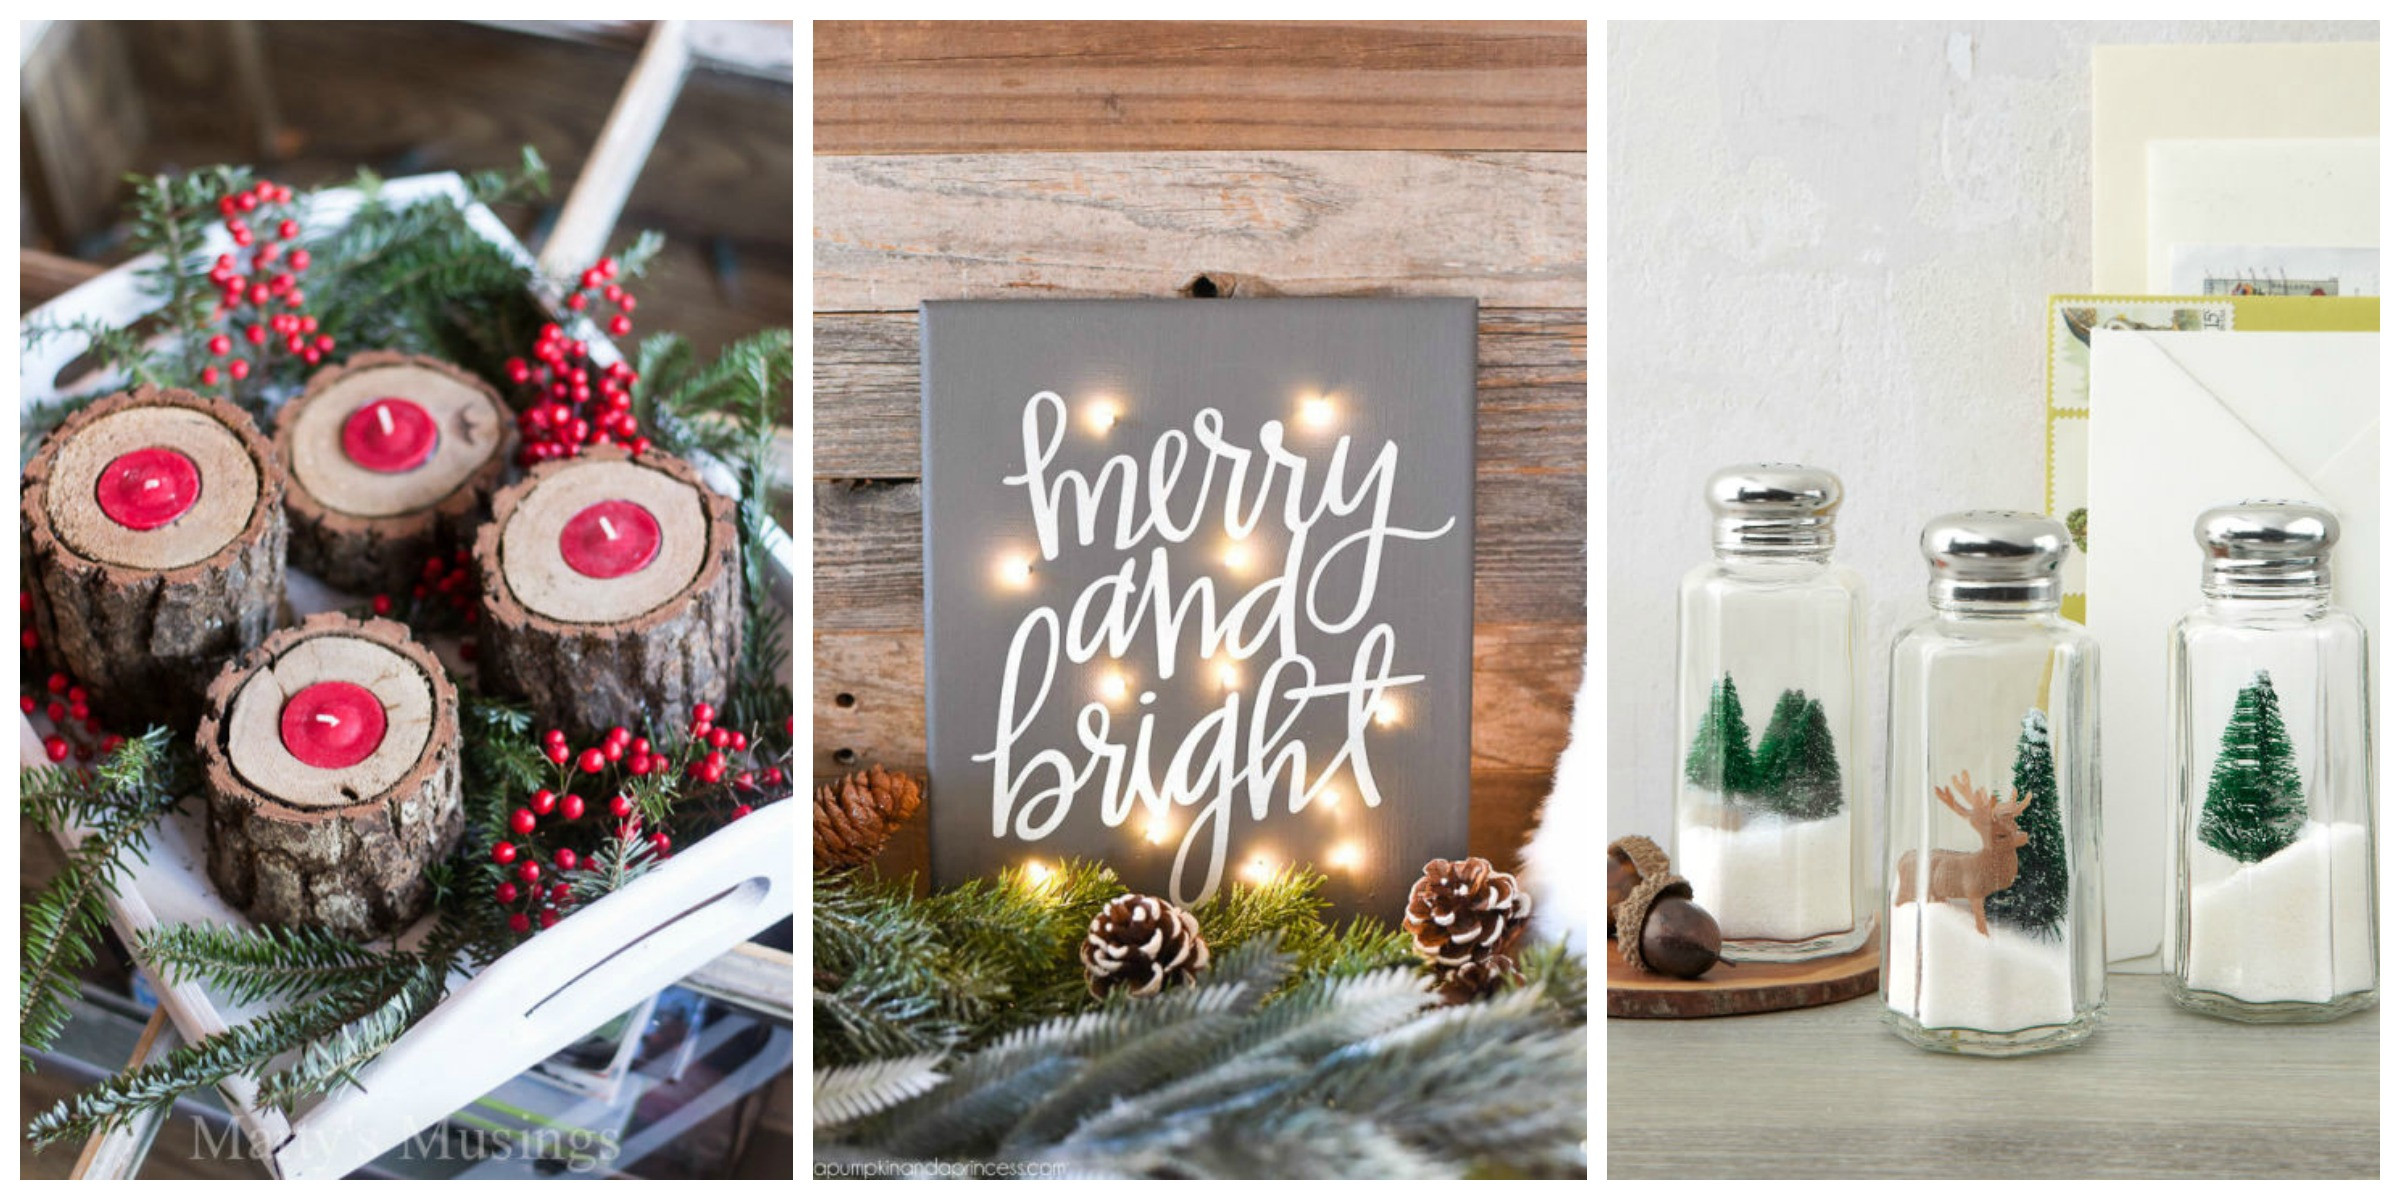 Best ideas about DIY Christmas Decor . Save or Pin 35 DIY Homemade Christmas Decorations Christmas Decor Now.